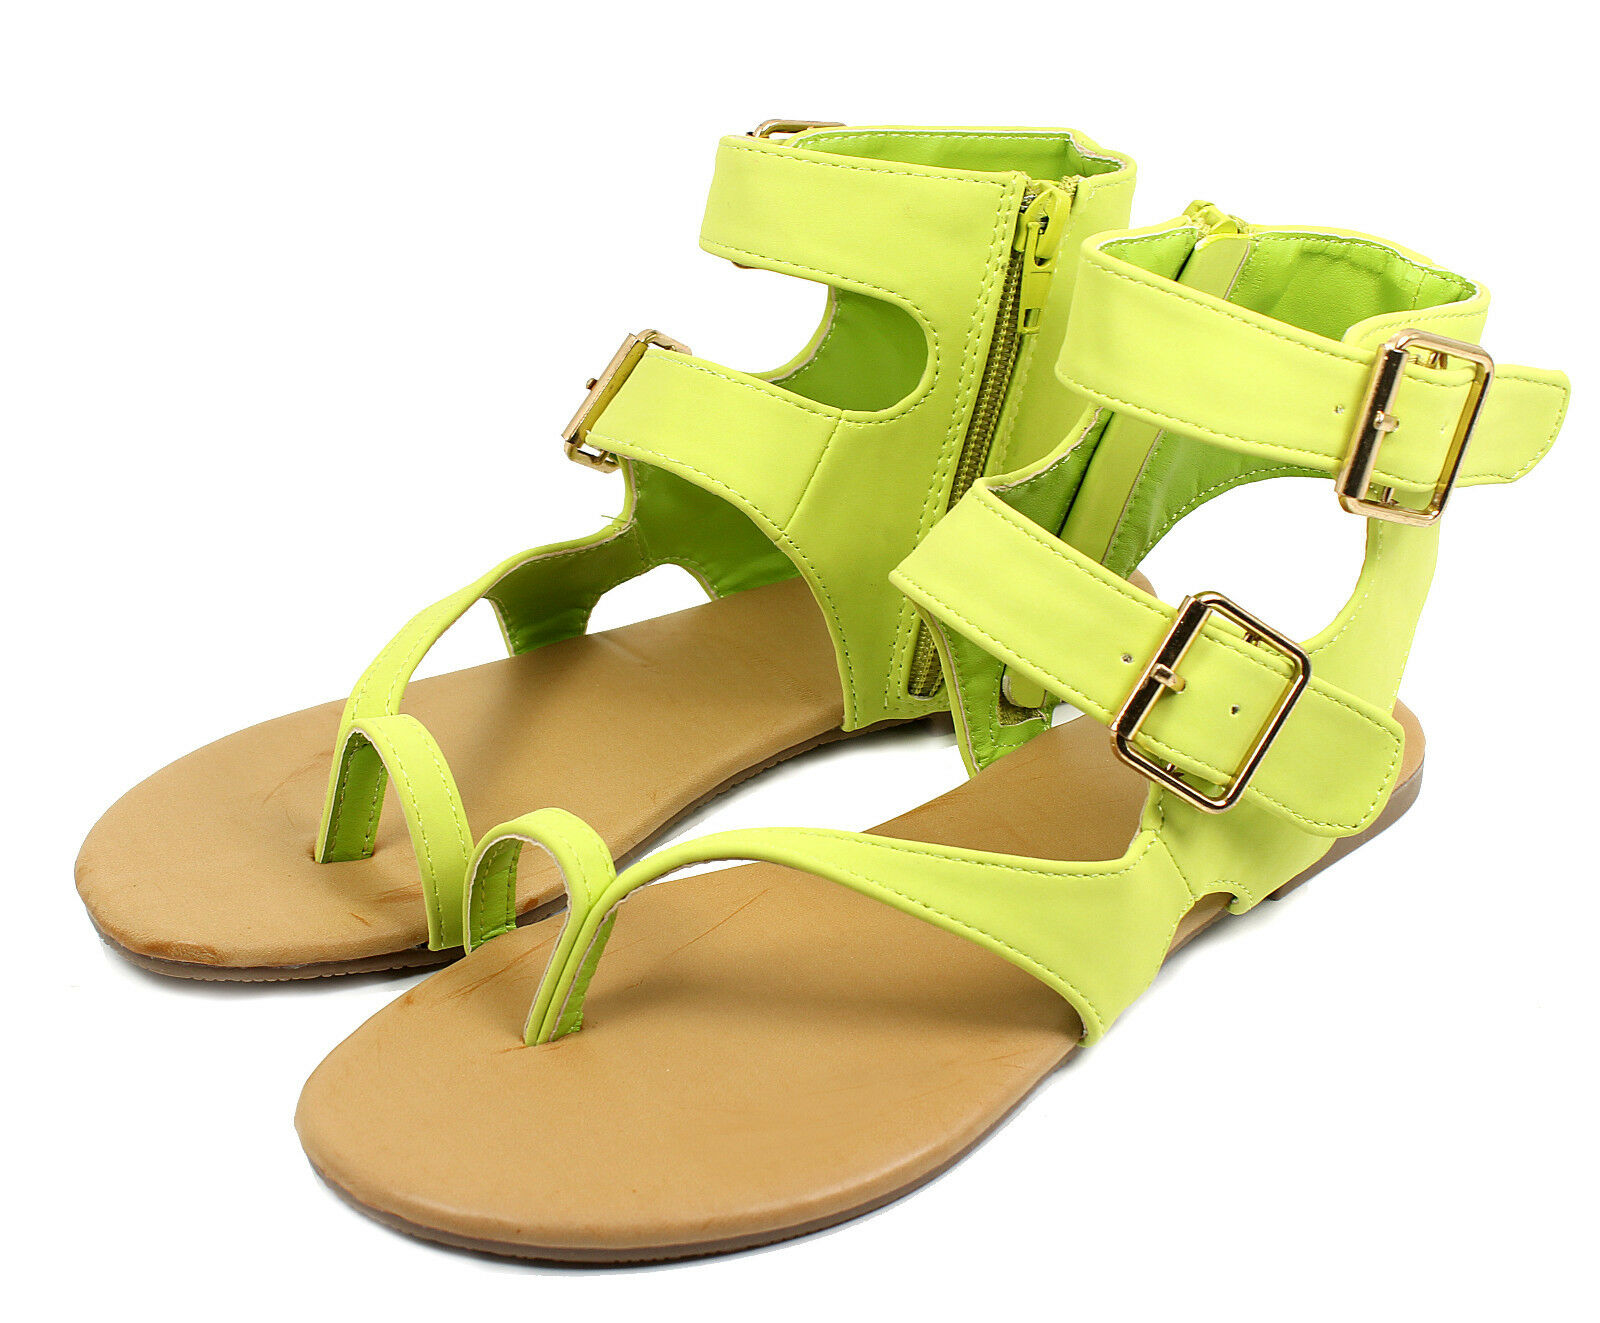 Nadya-08 Buckles Zipper Flats Gladiator Lime Sandals Party Women's Shoes Lime Gladiator 7.5 6345aa